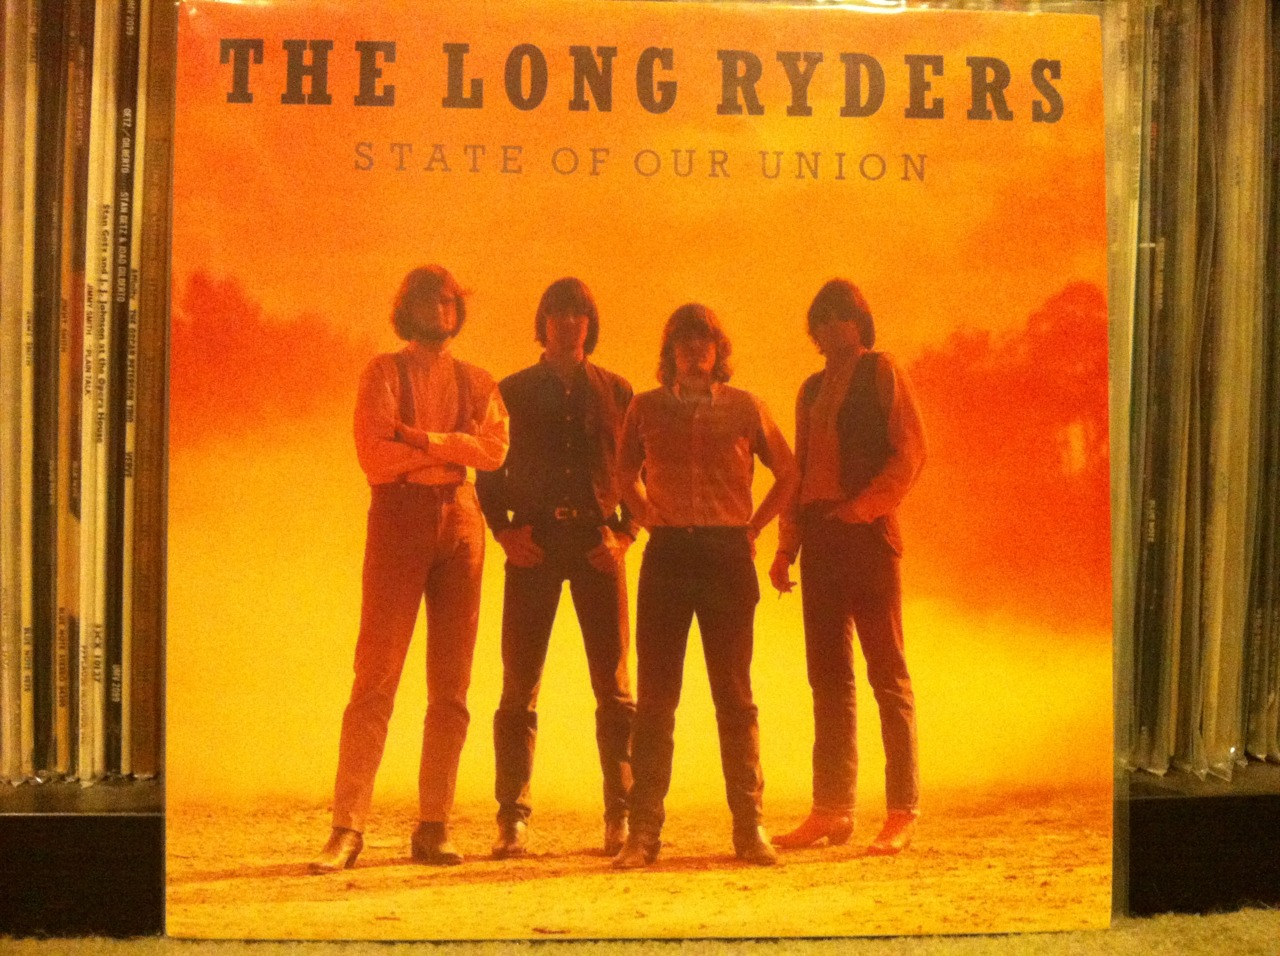 """The State Of Our Union!    """"I thought I saw some diplomat hawking secret plans in the park.   I thought I saw my president walking through Harlem late after dark.""""   Those first lines of this record's opener - Looking For Lewis And Clark - suggest you're in for a politically charged wild ride. Turns out it's a well-written, tuneful, fun one at that. I love this record for so many reasons and one of them is that The Long Ryders use this record to prove the supposed rock 'n' roll dust bowl of the 1980s is a myth.   This record is an appropriately arrogant blend of country rock love of Gram Parsons, plugged into some Byrdsian jangle guitar, a strong pop sensibility and the spiritof Woody Guthrie. And it all happened in 1985.   Sid Griffin (g), Stephen McCarthy (g), Greg Sowders (d), and Tom Stevens (b)came together again in 1985 to create this long-player filled withaddictive Americana (no wonder it was so popular in England!). It's their second record together with thisline-up. The first being 1984's Native Sons (which may have even more goingfor it). The same line-up minus bassist Tom Stevens put out a great EP in 1983called 10-5-60.   State Of Our Union is packed to the gills with some predictable stuff like weaving, bashing, jangly guitars. But, it's just as heavy into harmonica, autoharp, banjo, and lap steel. Oh, and drums that never miss a beat and keyboards that don't stink.   Funny thing is, State Of Our Union seems as well suited to the have/have not times of today as it did in the mid 80s. Or, in the 1930s for that matter. I'm not saying the record is timeless but man is it close. There's no doubt the band didn't like trickle down economics or Ronald Reagan's view of America. But to say the record is singularly focused on politics underestimates this slab of fine wax. It's as easy to pump your fist in the air in support of the small man as it is to get lost in the scenery of riding the rails and filling up your coupe with gas from a glass topper. It's simple"""